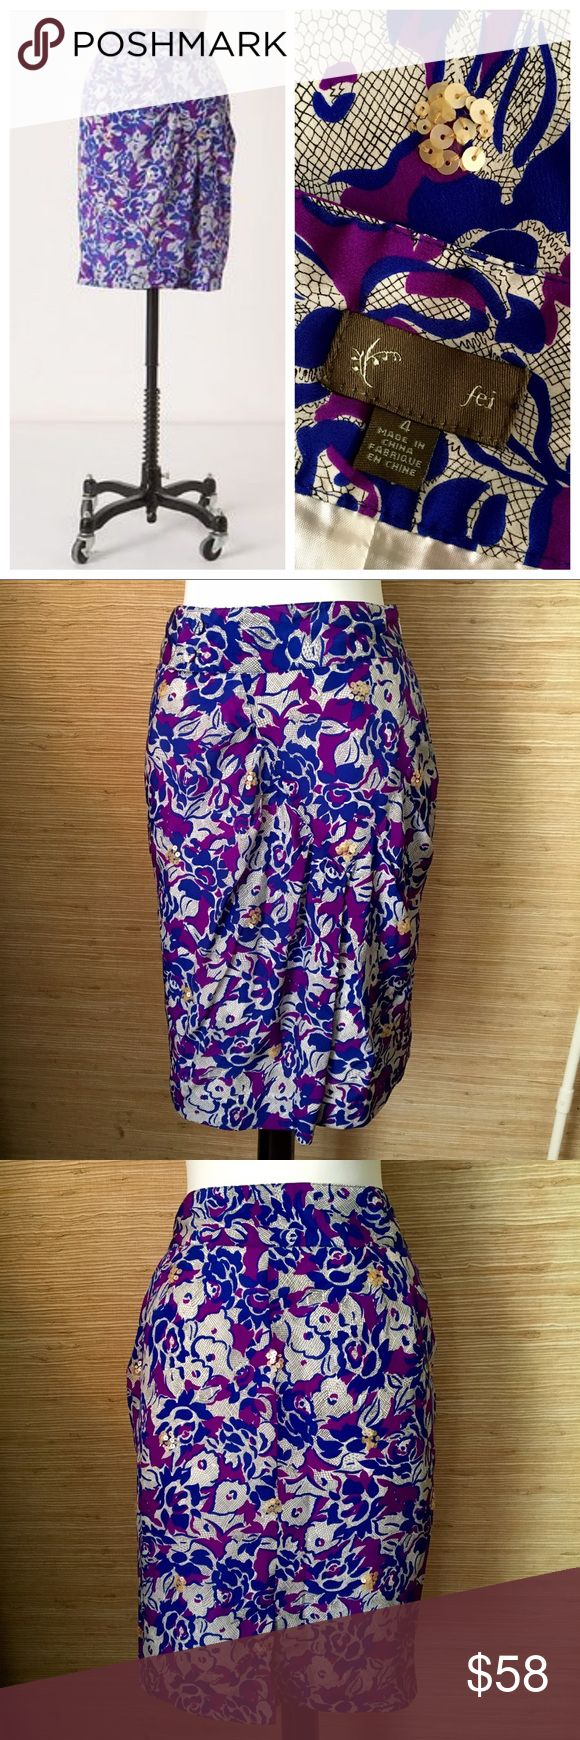 Fei for Anthro Silk Scattered Sequins Skirt Excellent condition! Cobalt, plum and black pattern with champagne sequins scattered here and there. Hard to see details include double button embellishment near waist and a diagonal gather seam across the front. Poly lined. Anthropologie Skirts